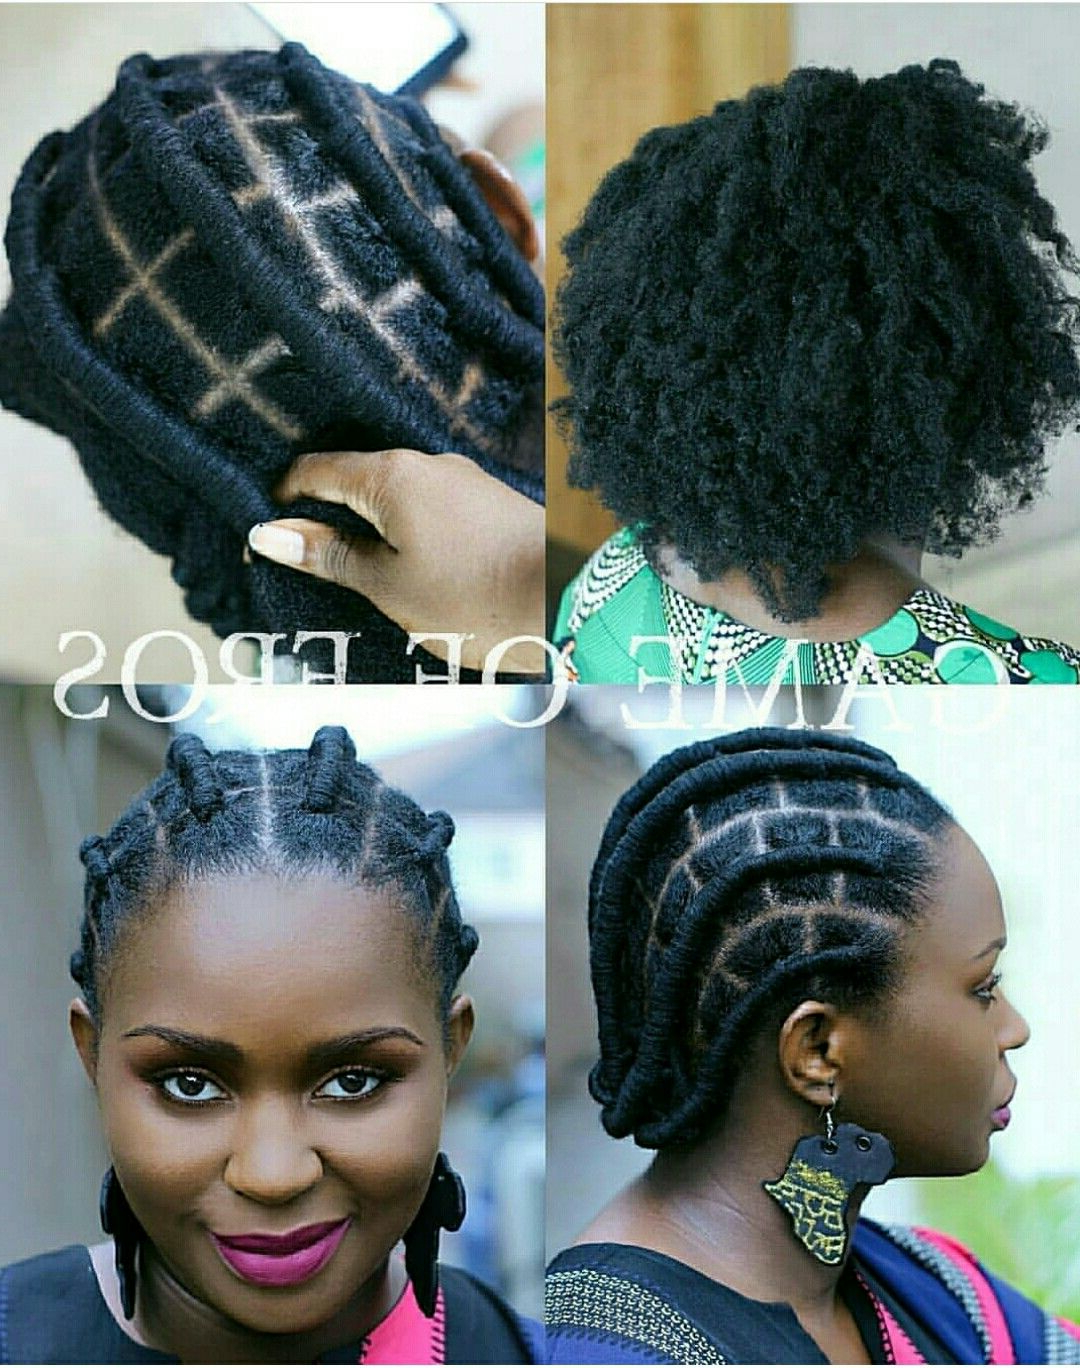 Hair Styles, Natural Pertaining To Popular Threaded Ponytail Hairstyles (View 2 of 20)